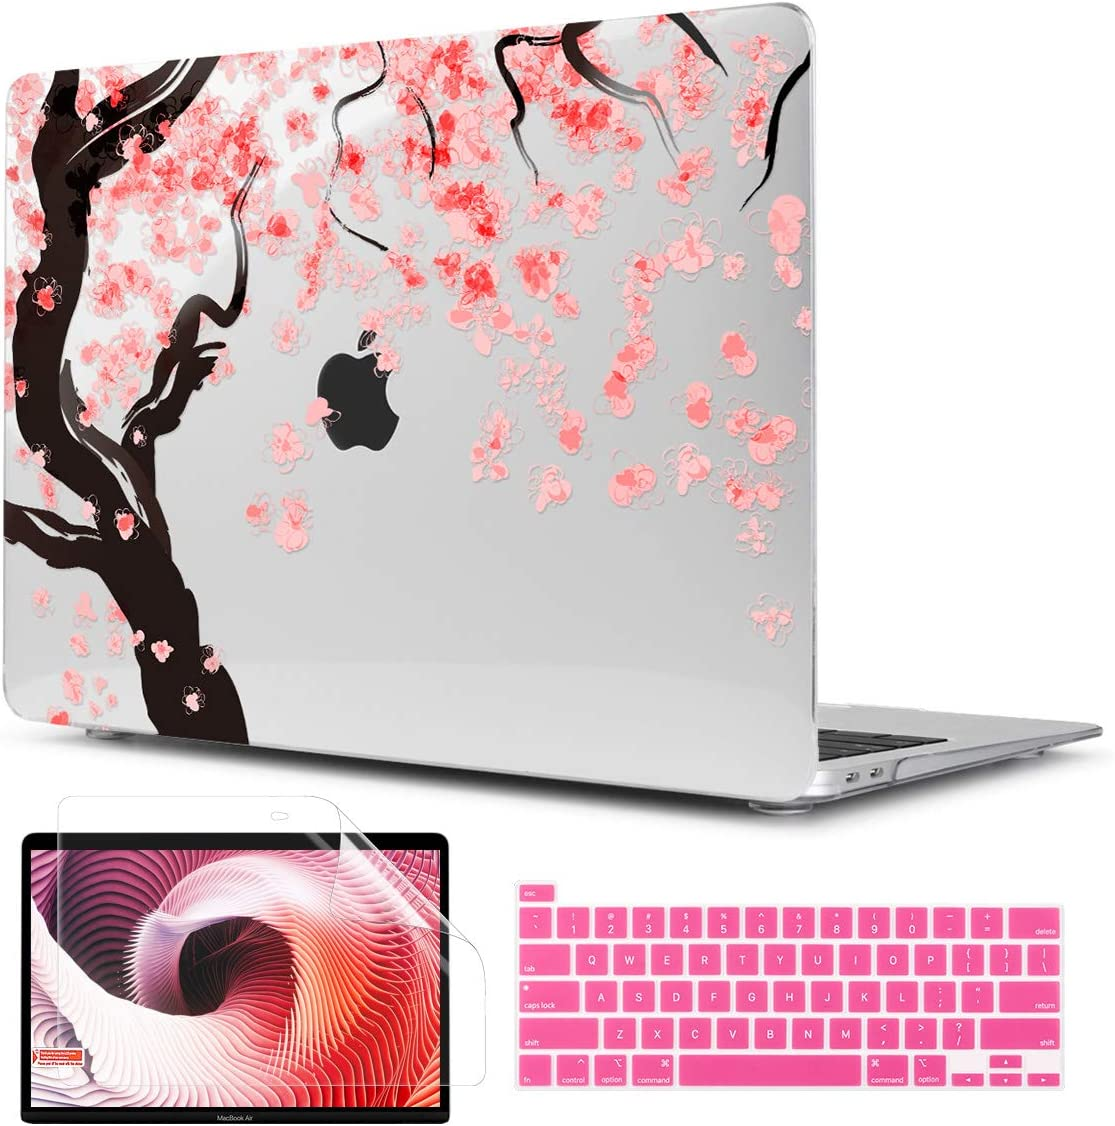 TwoL Cover for MacBook Pro 16 inch 2019 2020, Cherry Blossoms Printed Hard Shell Case and Keyboard Skin Screen Protector for New MacBook Pro 16 A2141